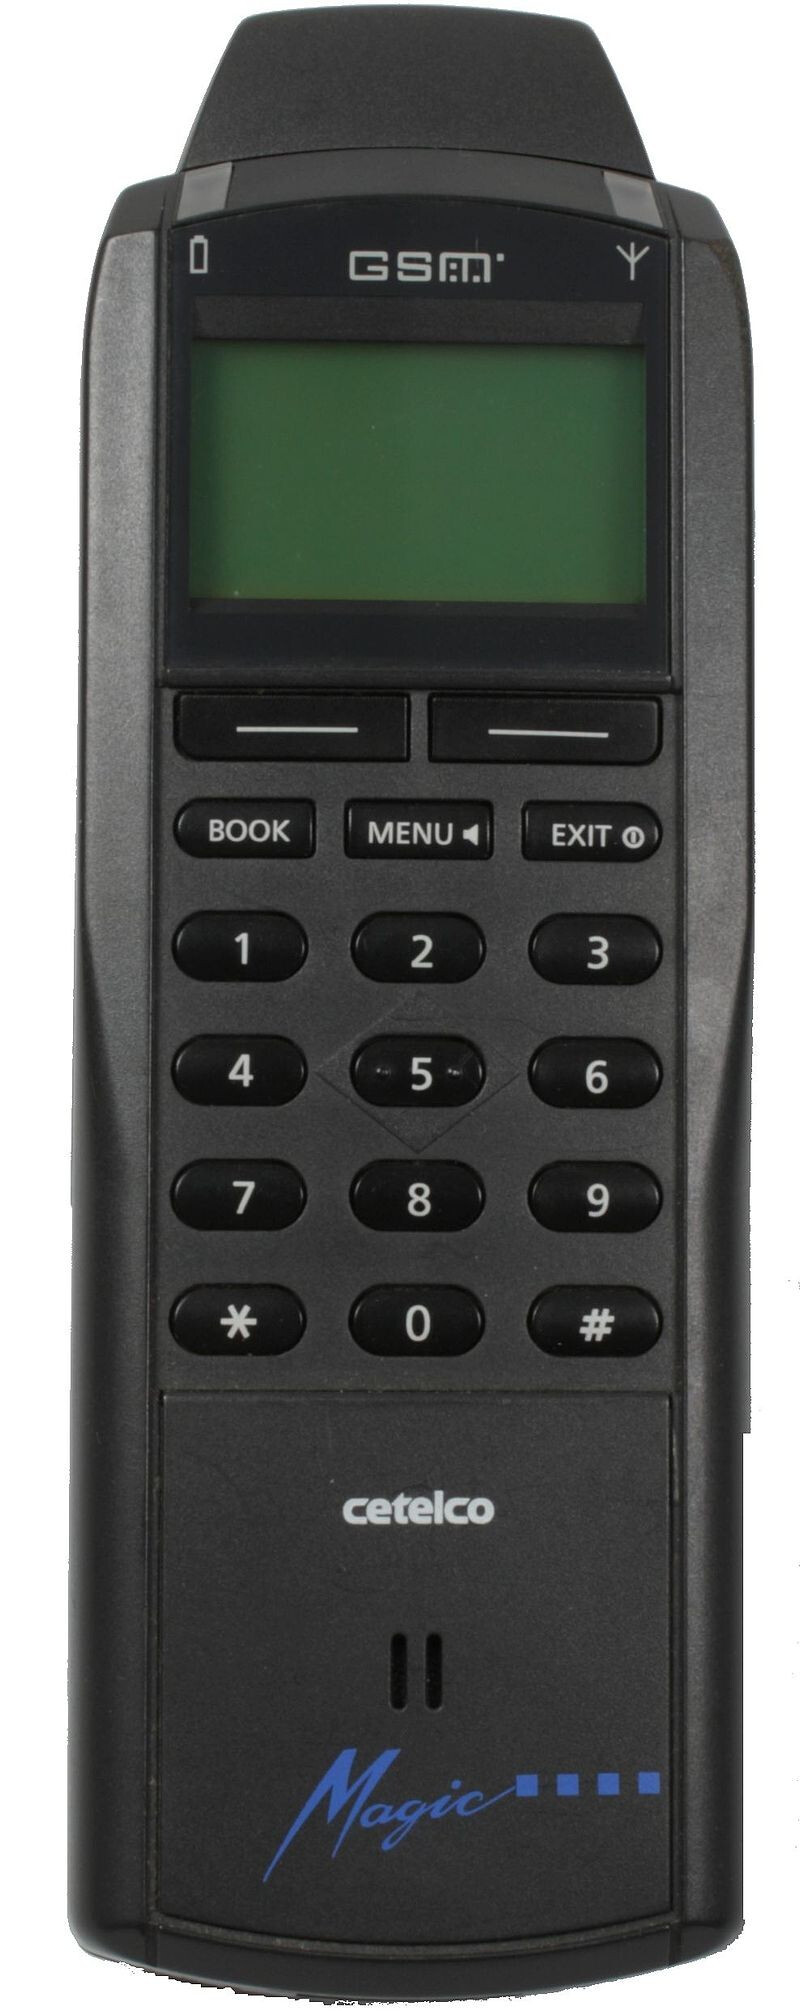 Hagenuk MT-2000 - Did you know: Nokia's Snake is not the world's first mobile game